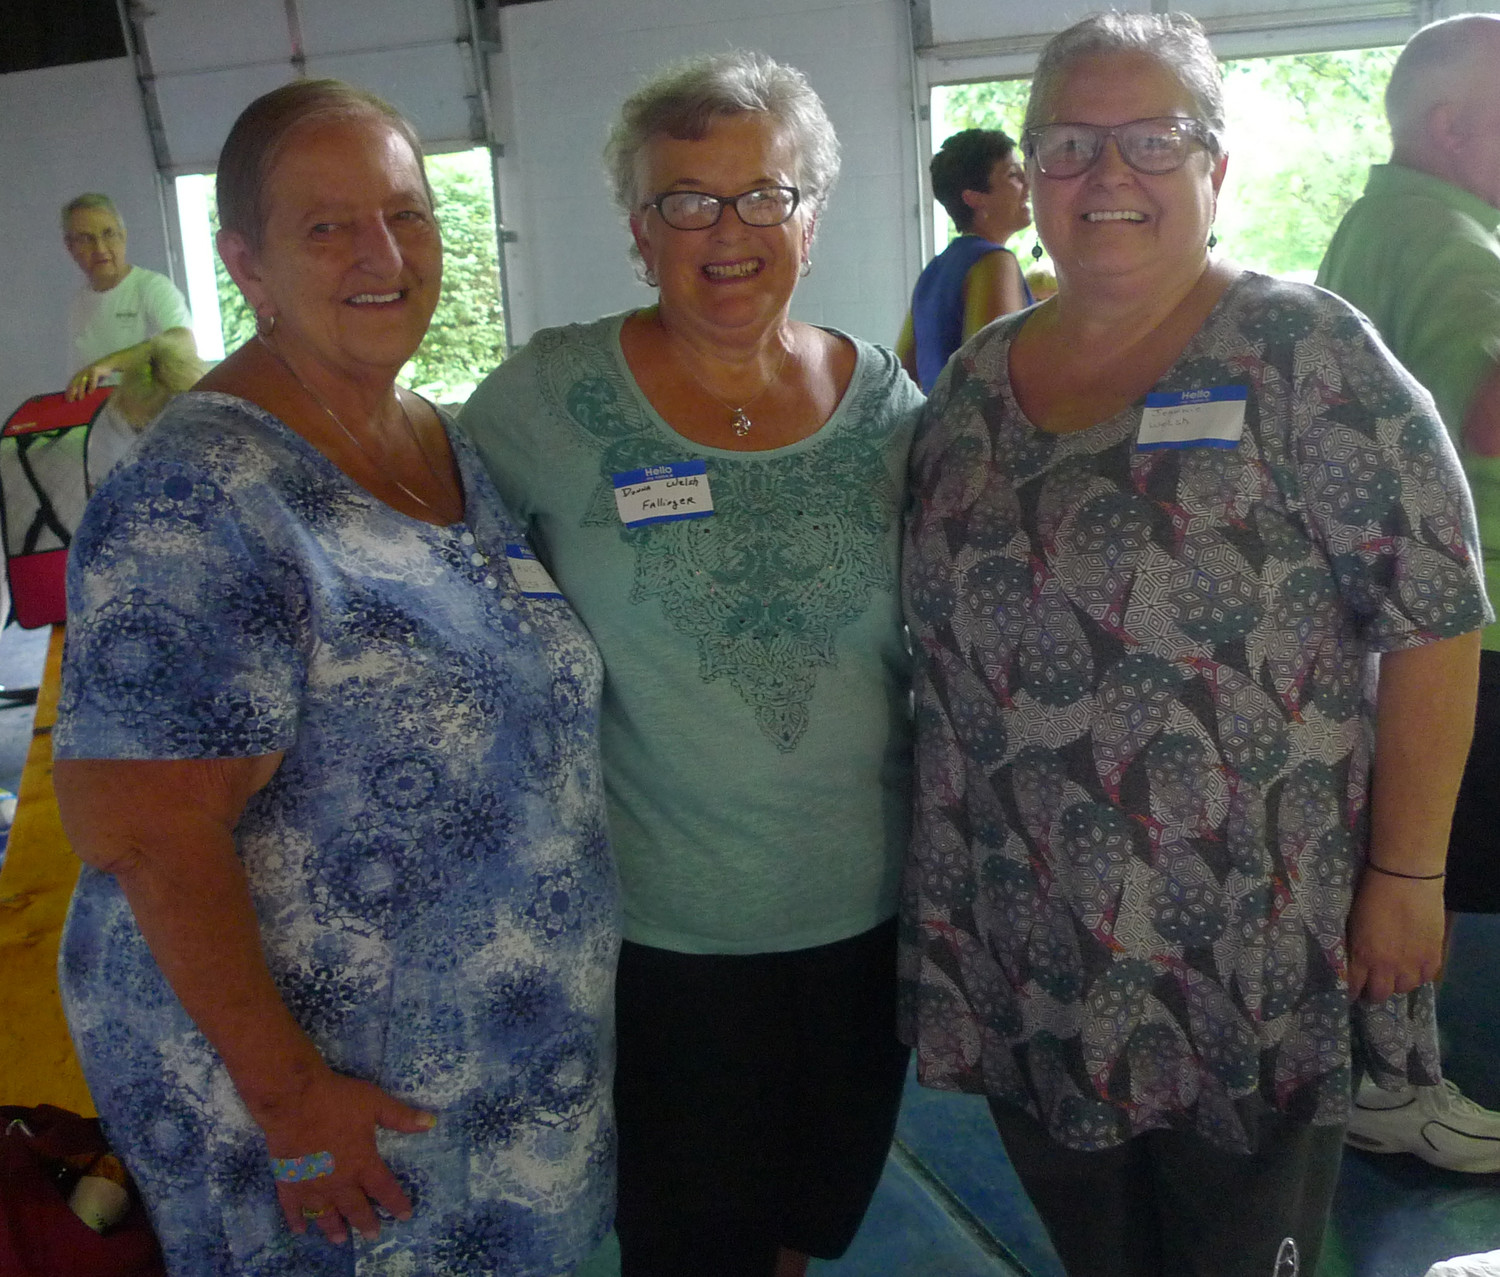 """Proud to be River Rats""--Sisters Nancy Lou Welsh-Emrich, Donna Welsh Fallinger, and Jeannie Welsh attended The Milk Bar reunion at Hoffer Park in Middletown on August 8."